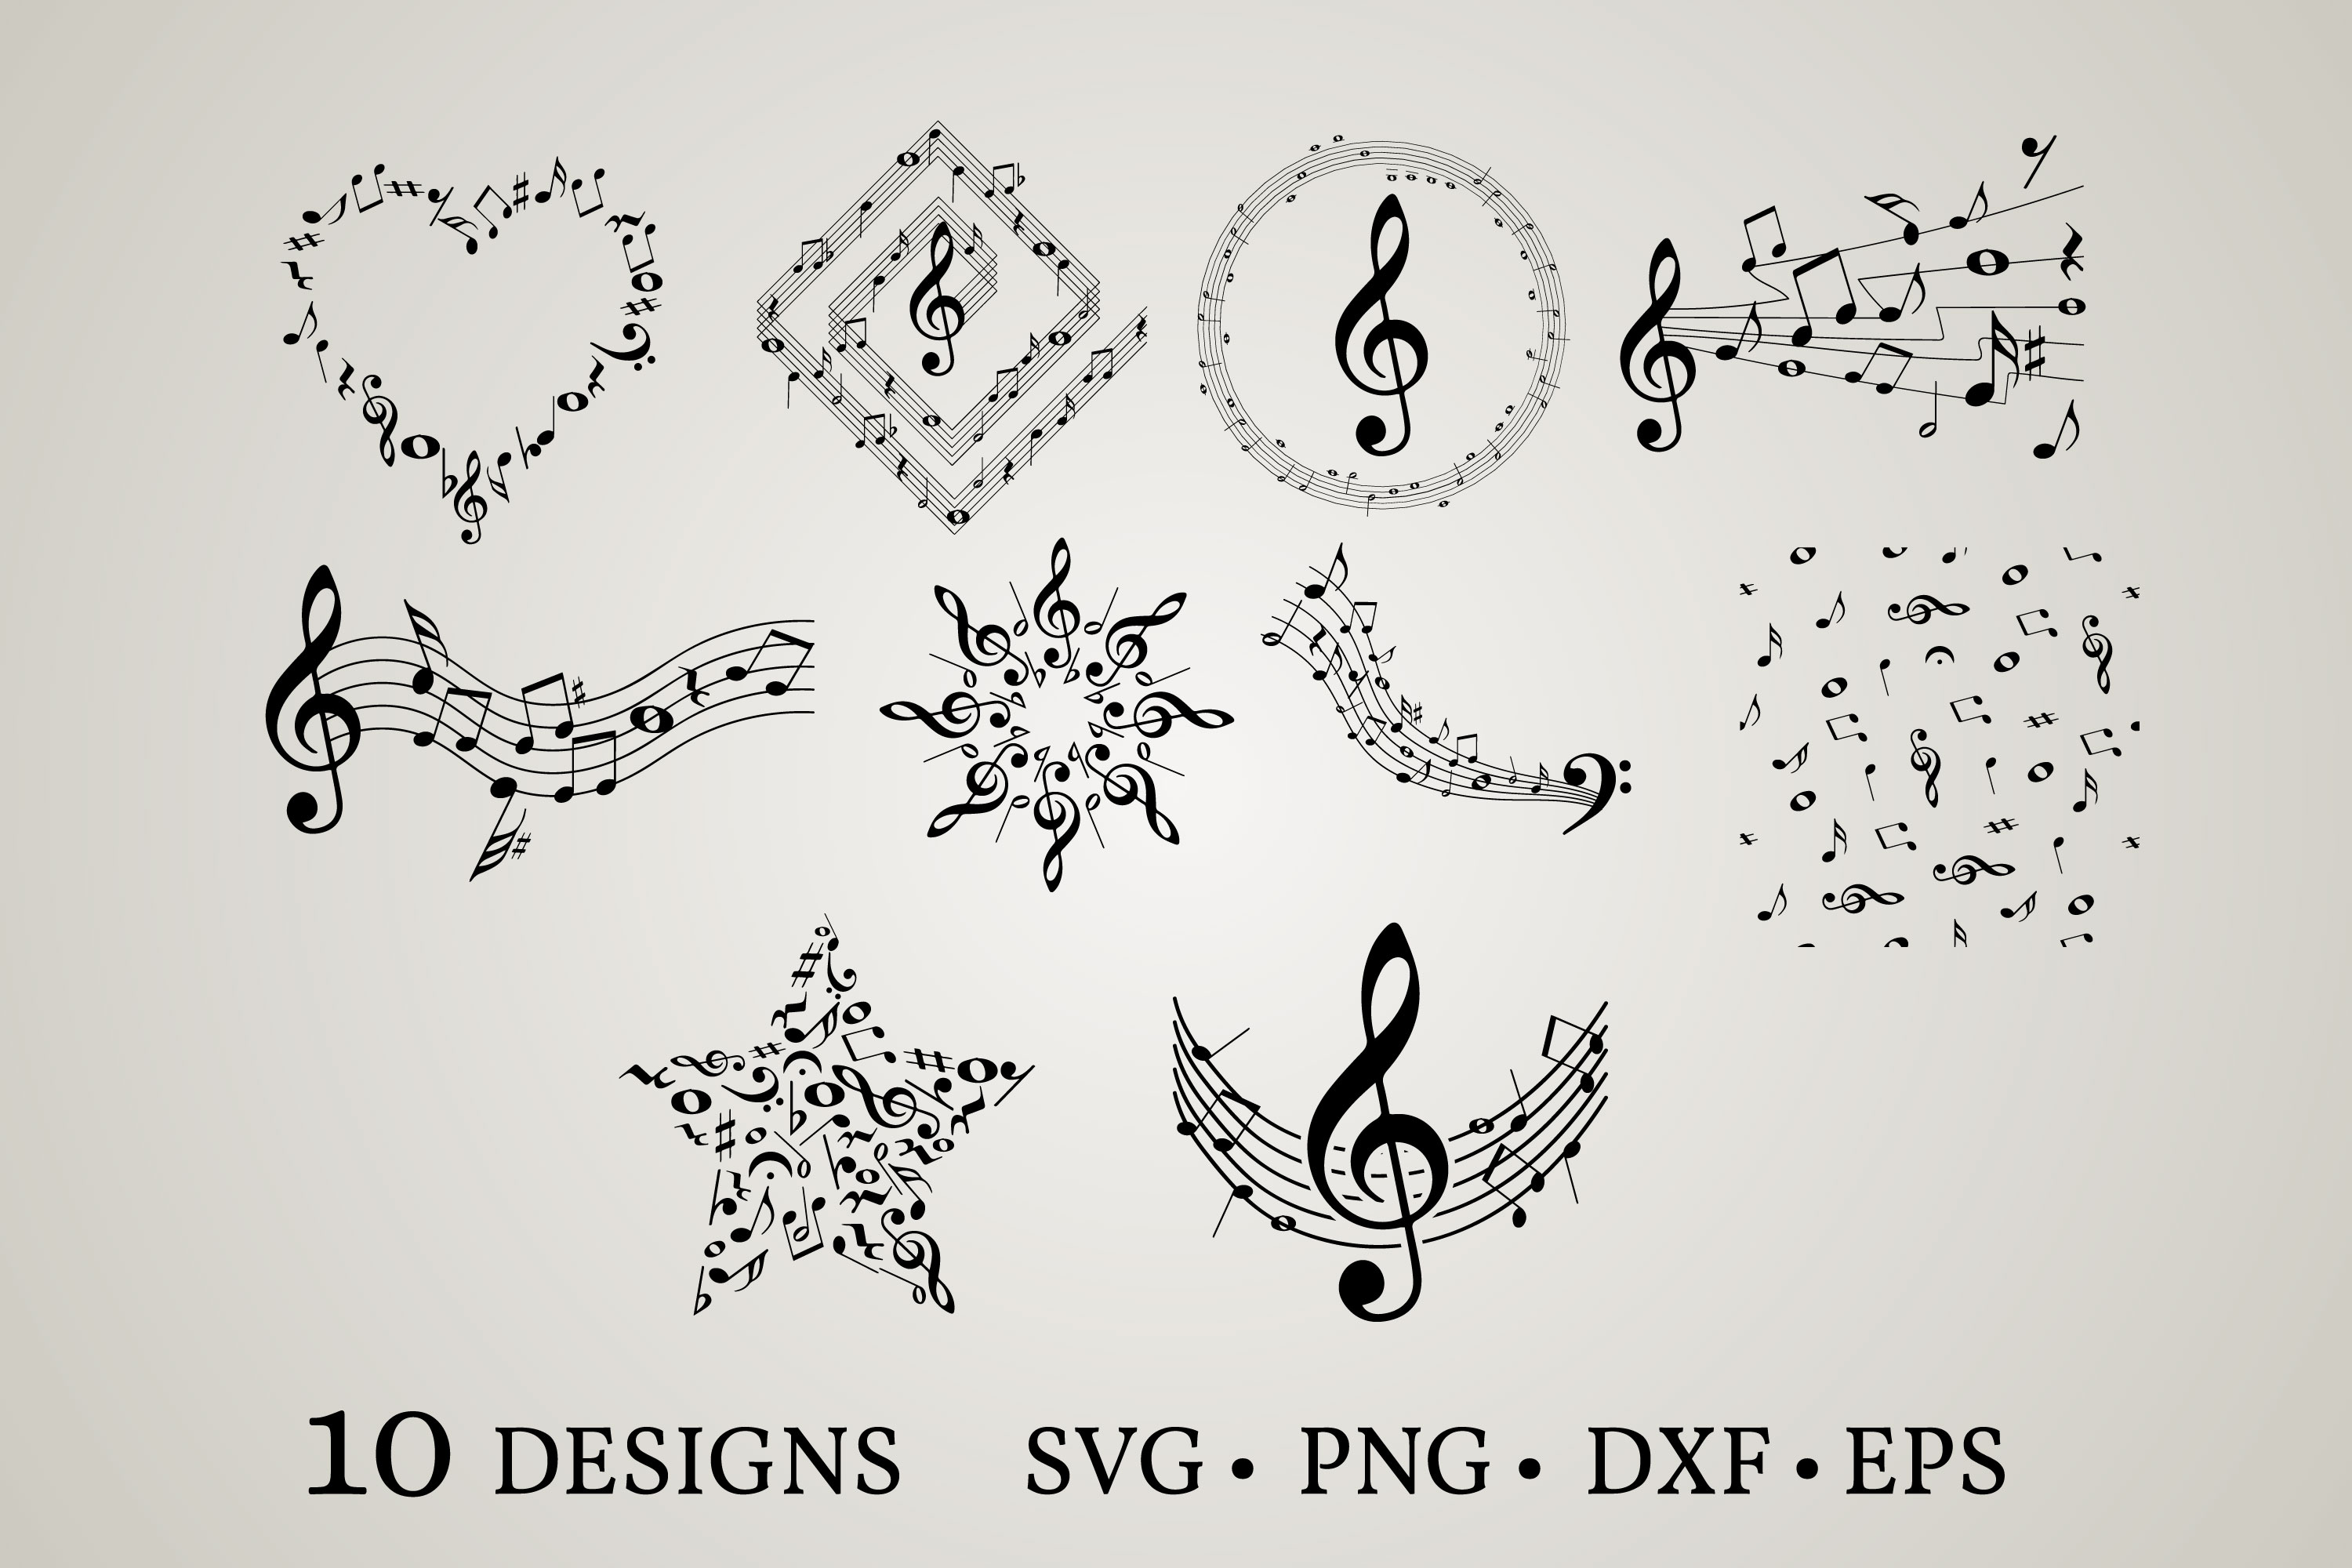 Music Note SVG File